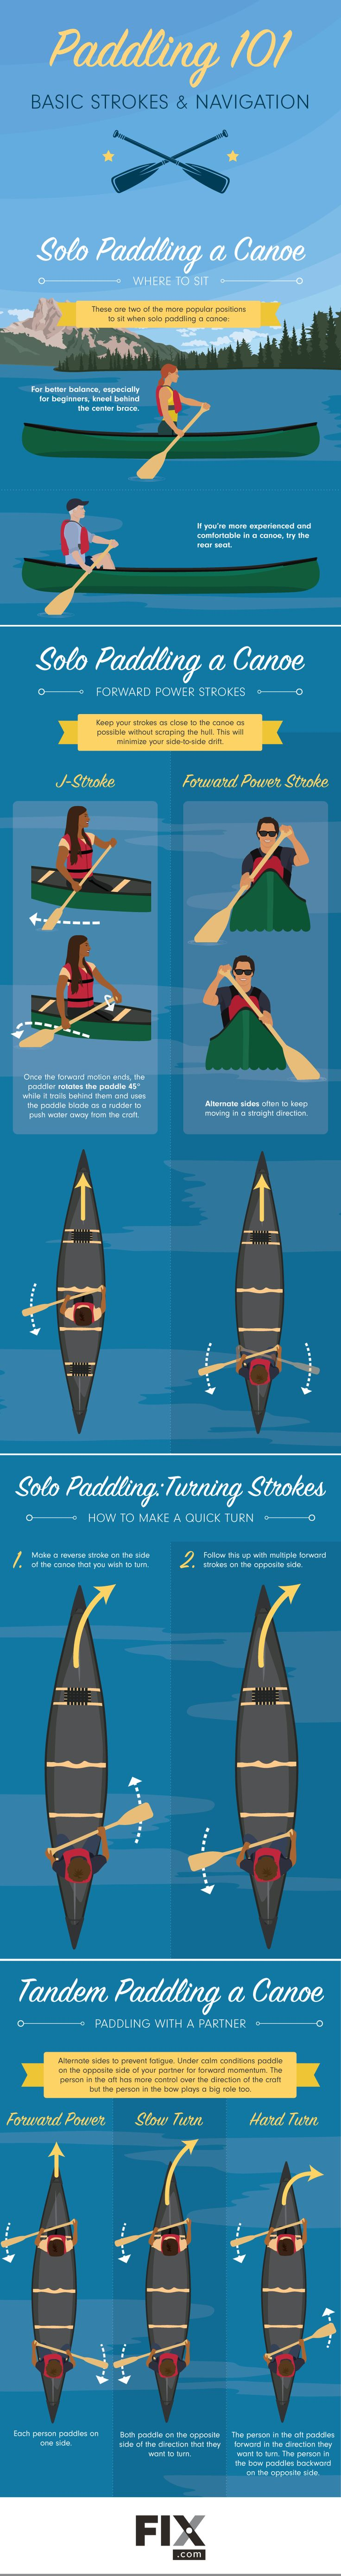 Learn how to perform basic canoe strokes, as well as quick turns and tips on navigating with our guide!